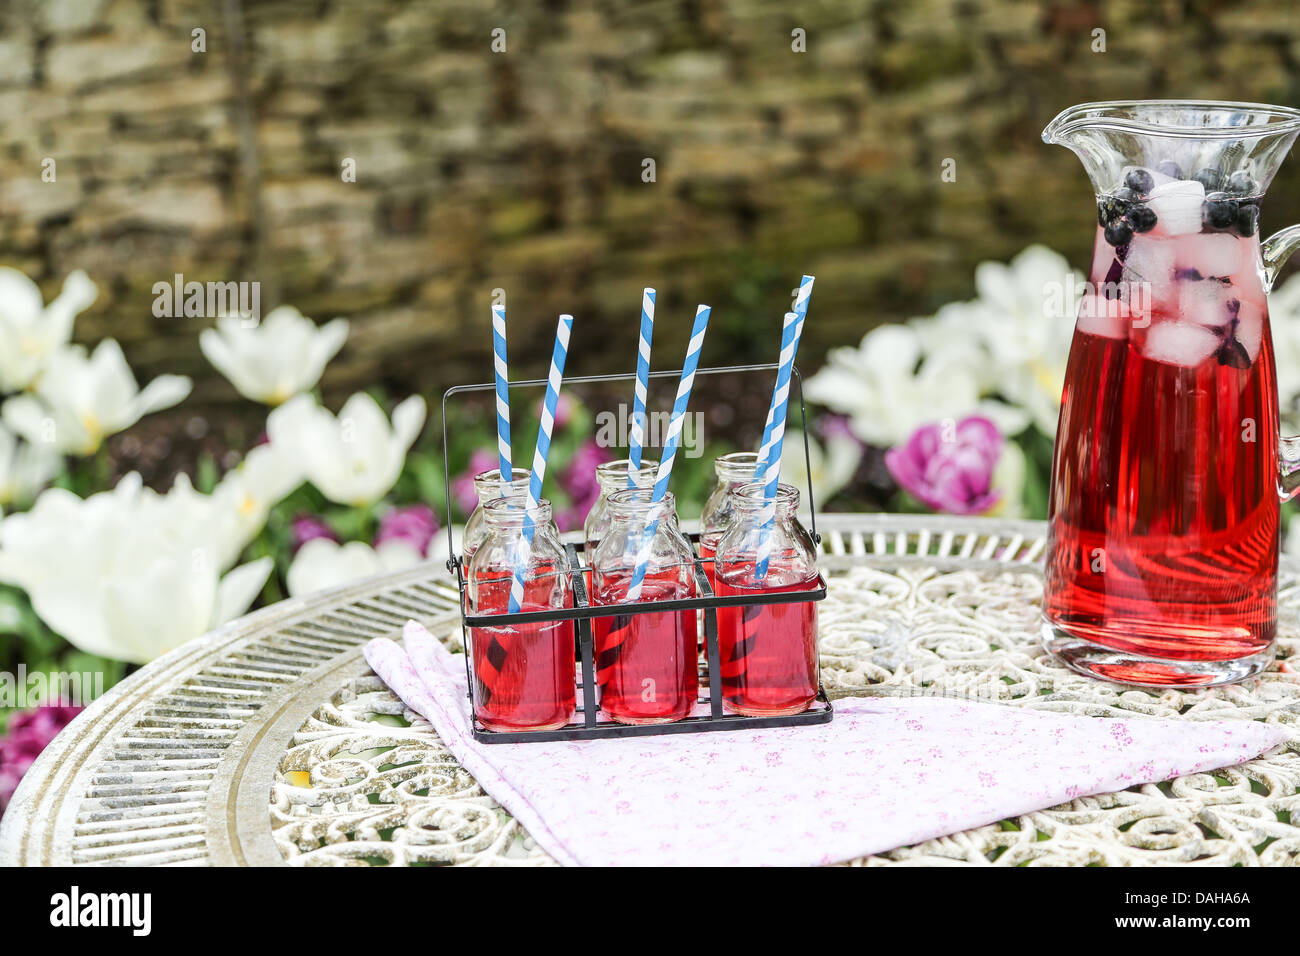 Summer drink of cold red fruit flavour juice served outside on an ornate table - shallow depth of field - Stock Image